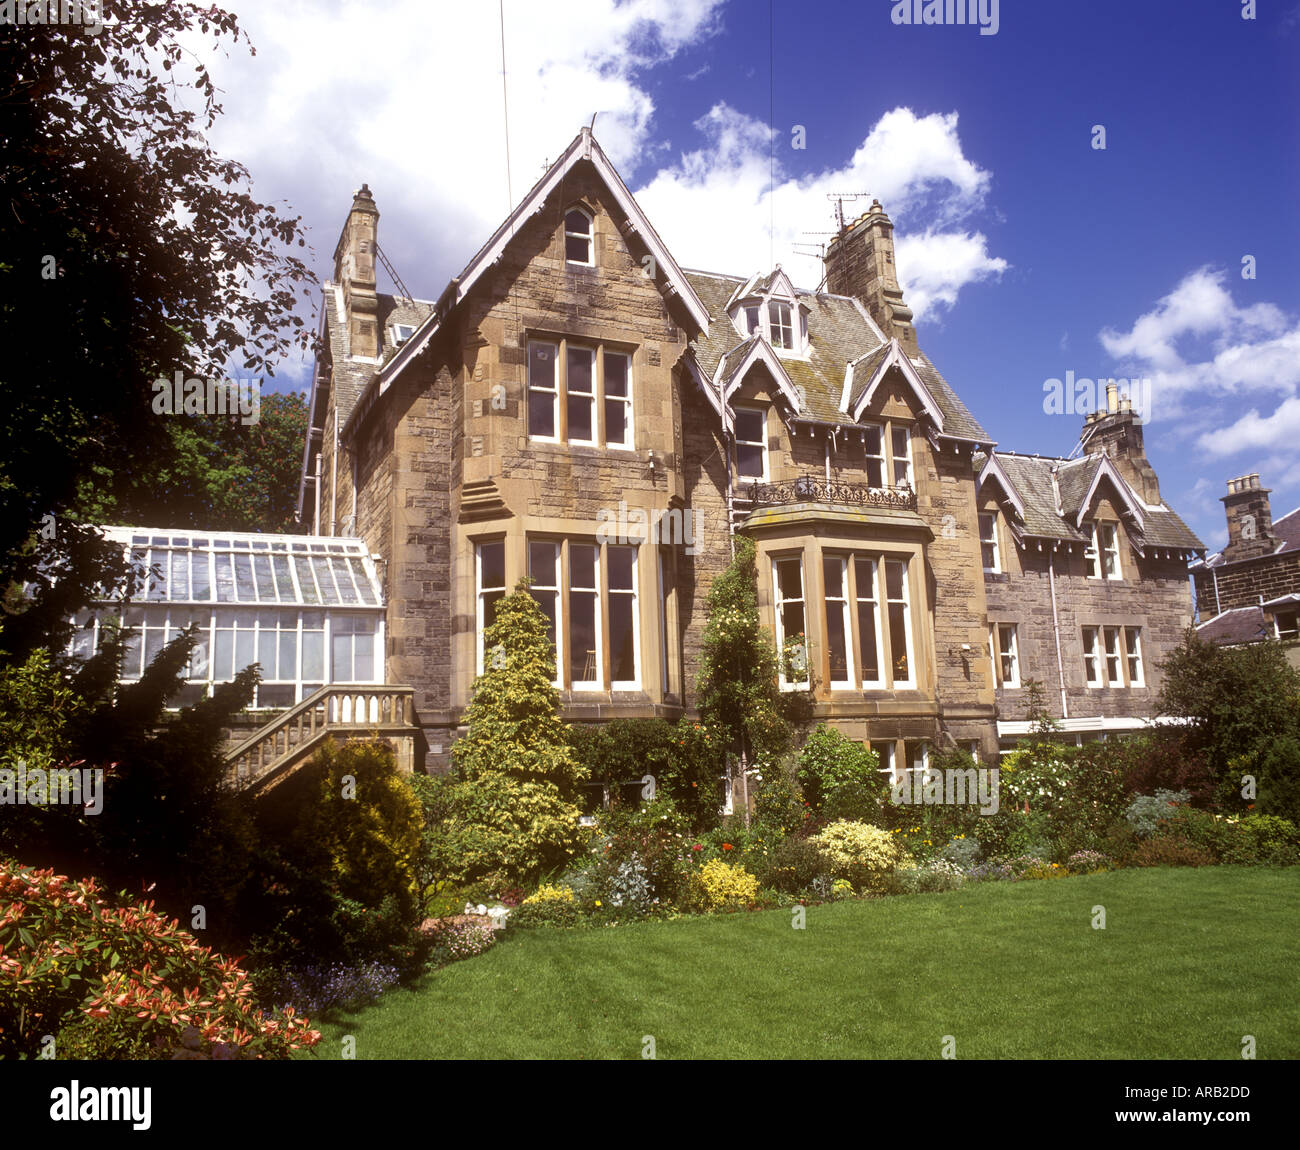 viktorianischen herrenhaus edinburgh schottland stockfoto bild 1553116 alamy. Black Bedroom Furniture Sets. Home Design Ideas